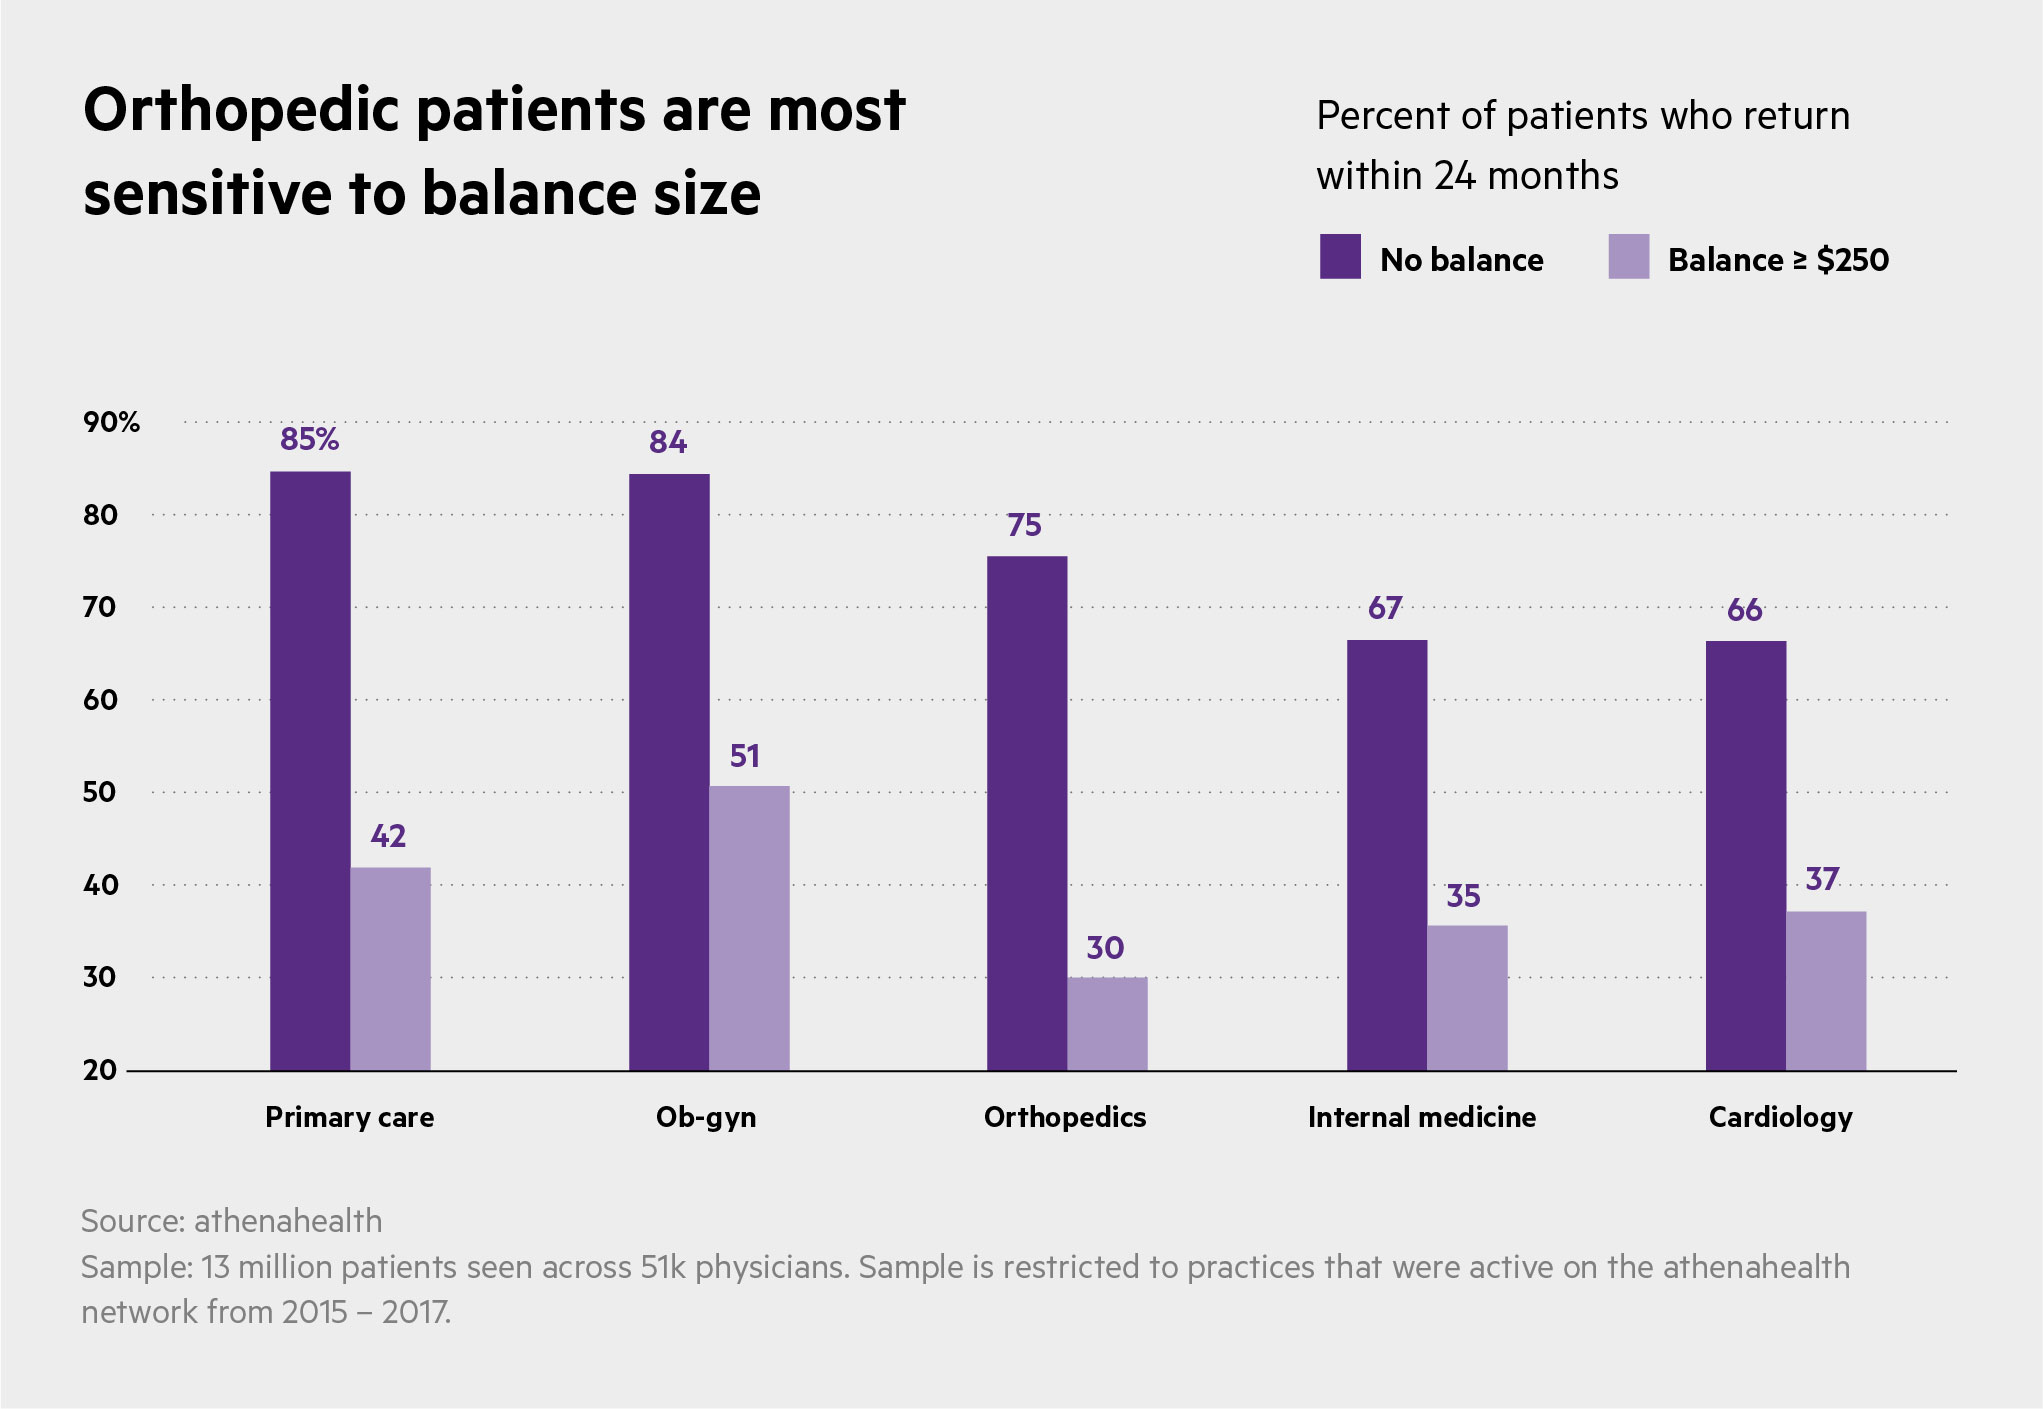 patient balance by speciality USE THIS ONE